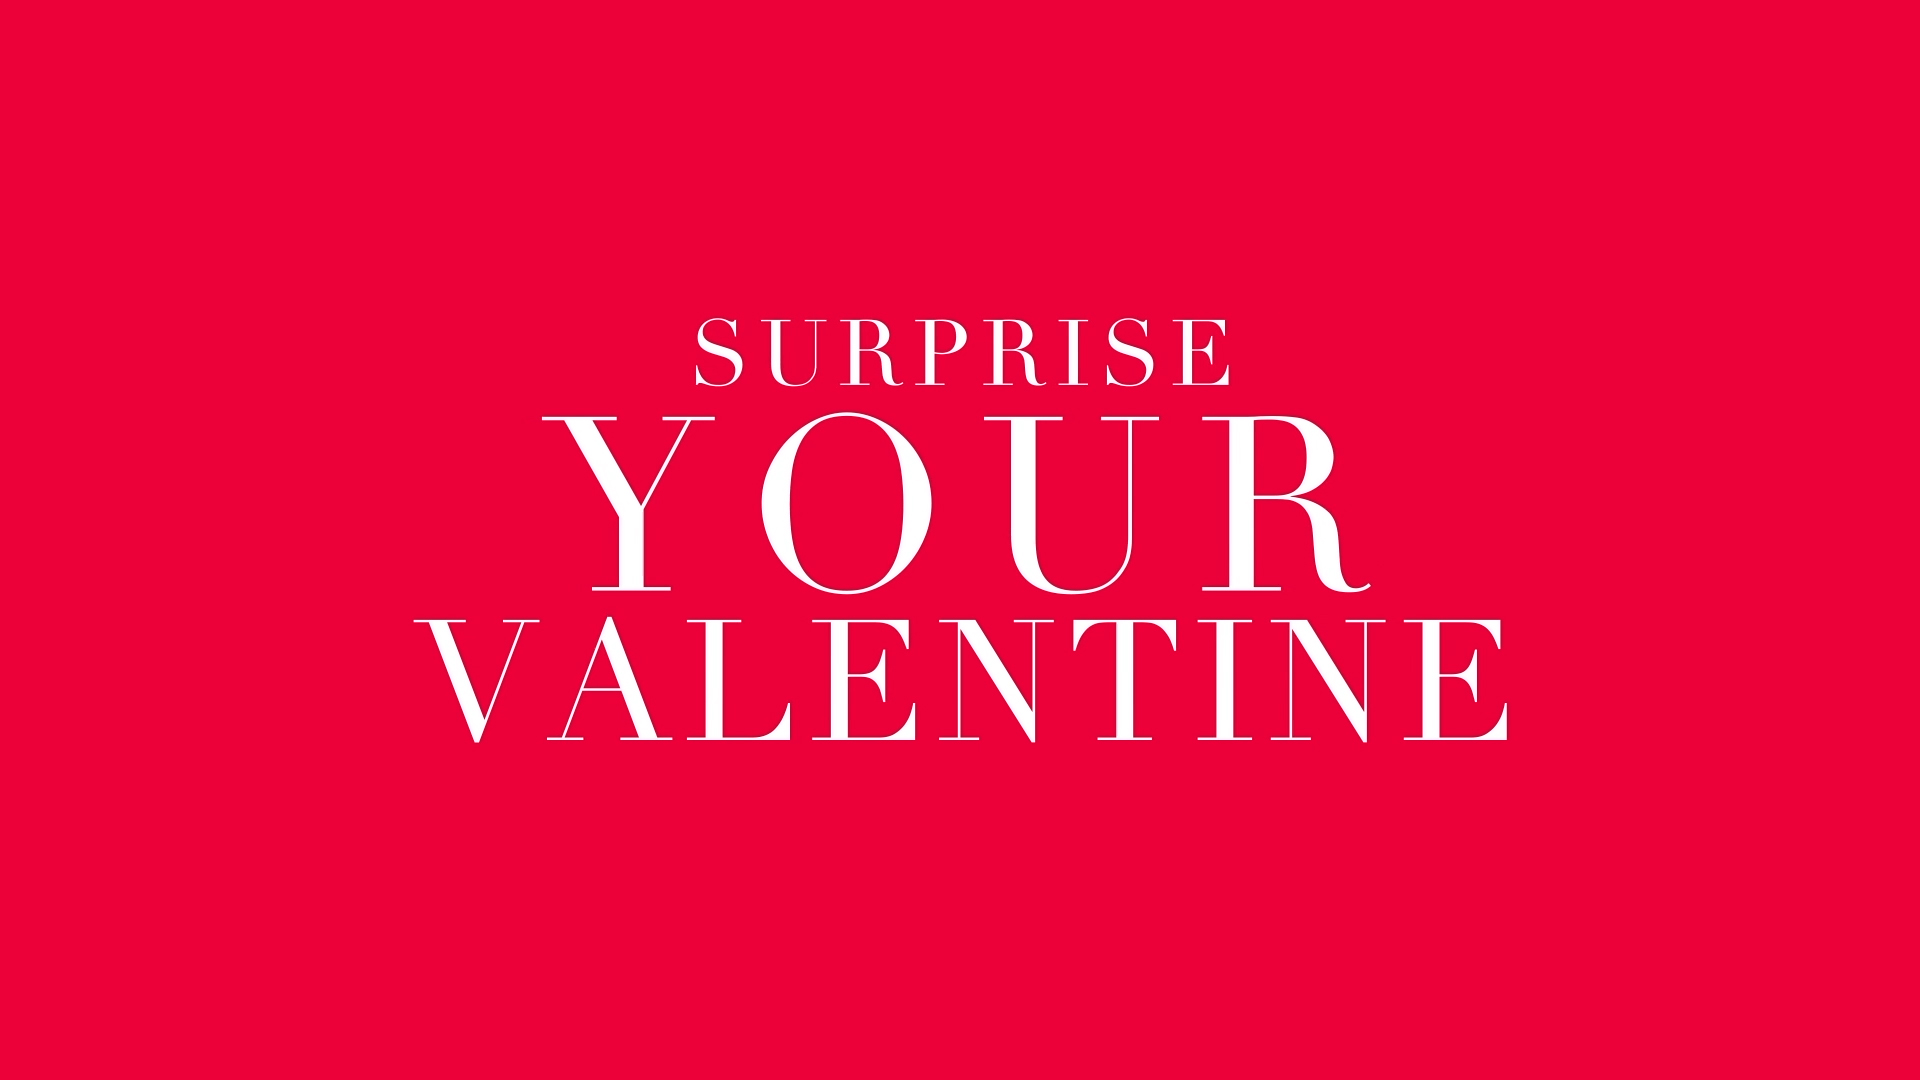 valentines day surprise your love